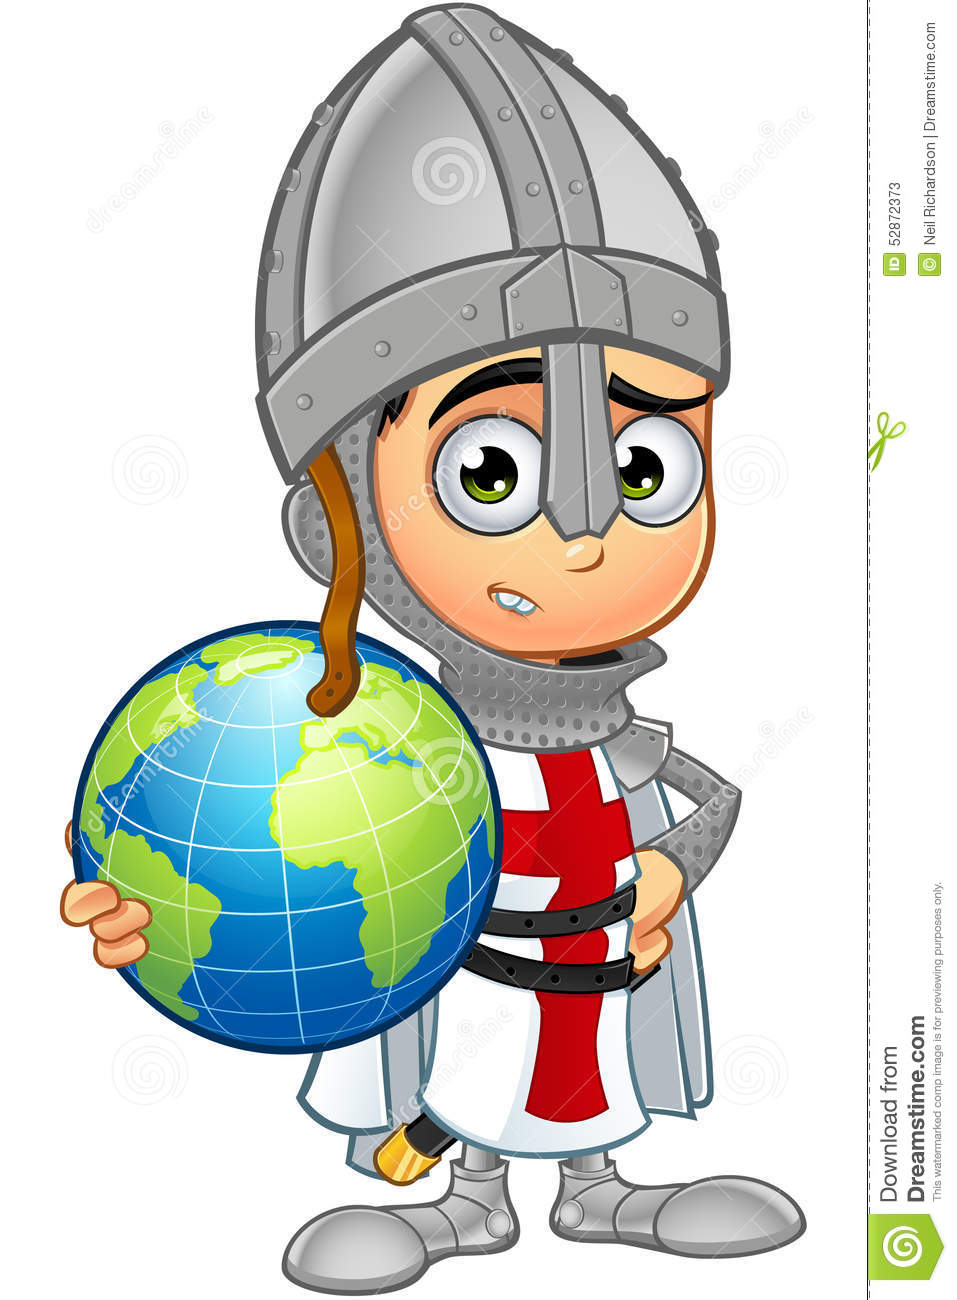 St. George Boy Knight Character Stock Vector - Image: 52872373